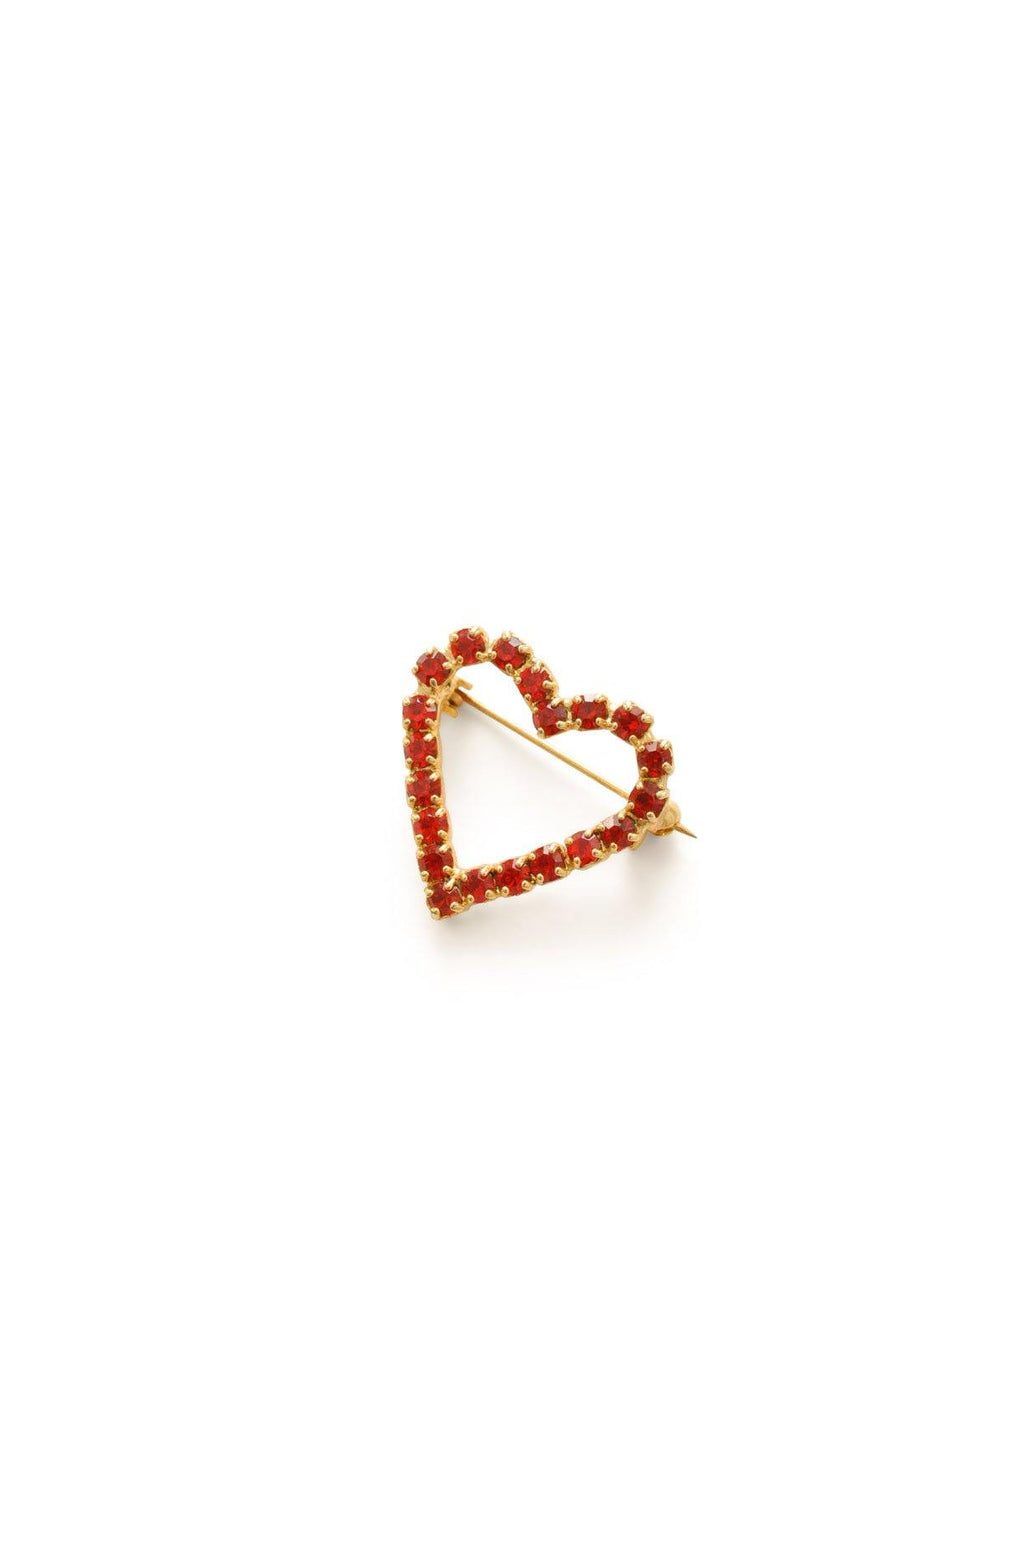 Red Heart Rhinestone Brooch